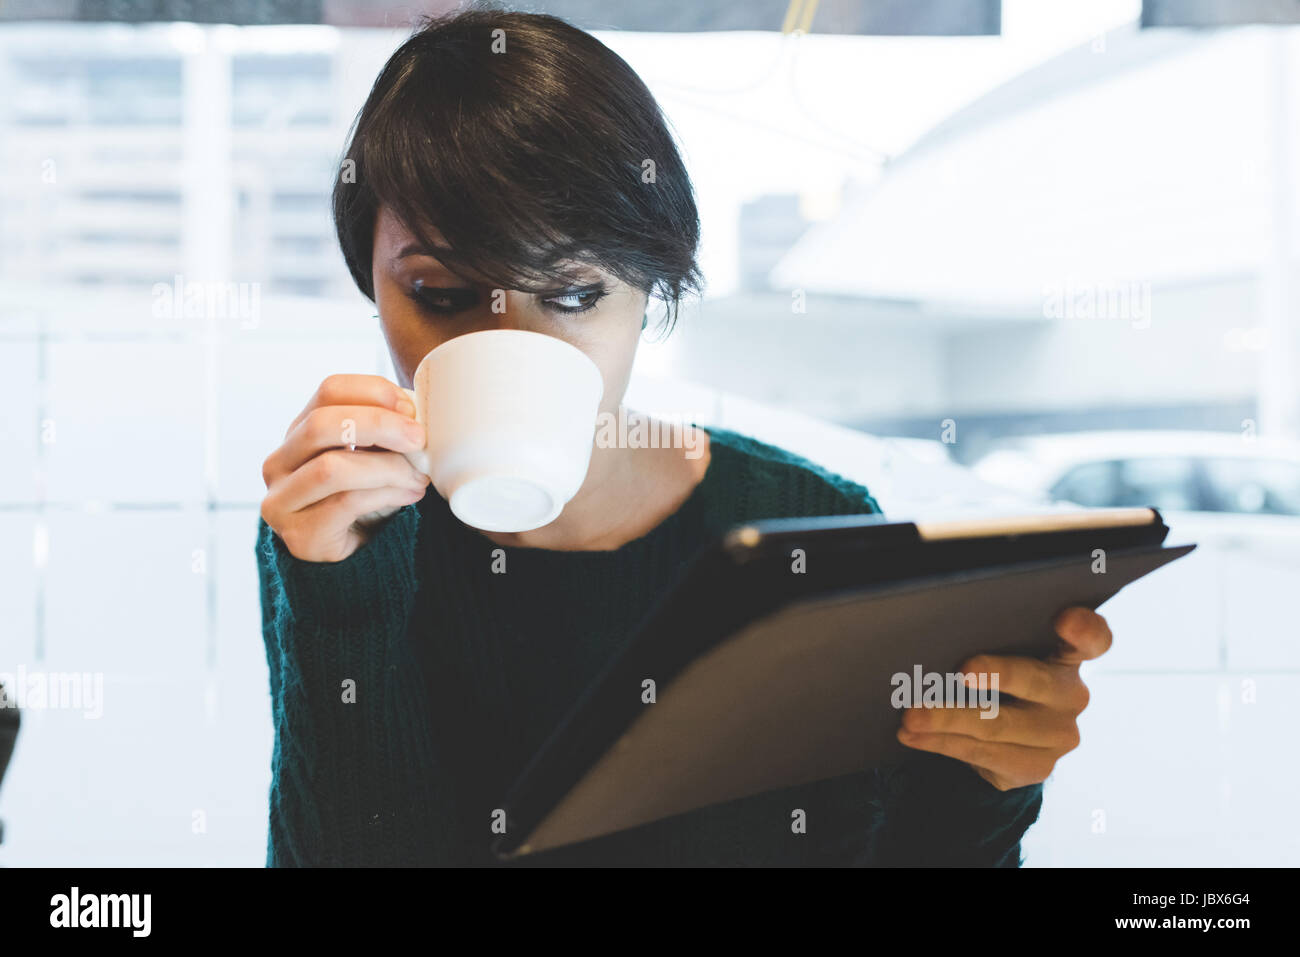 Woman in cafe looking at digital tablet and drinking coffee - Stock Image